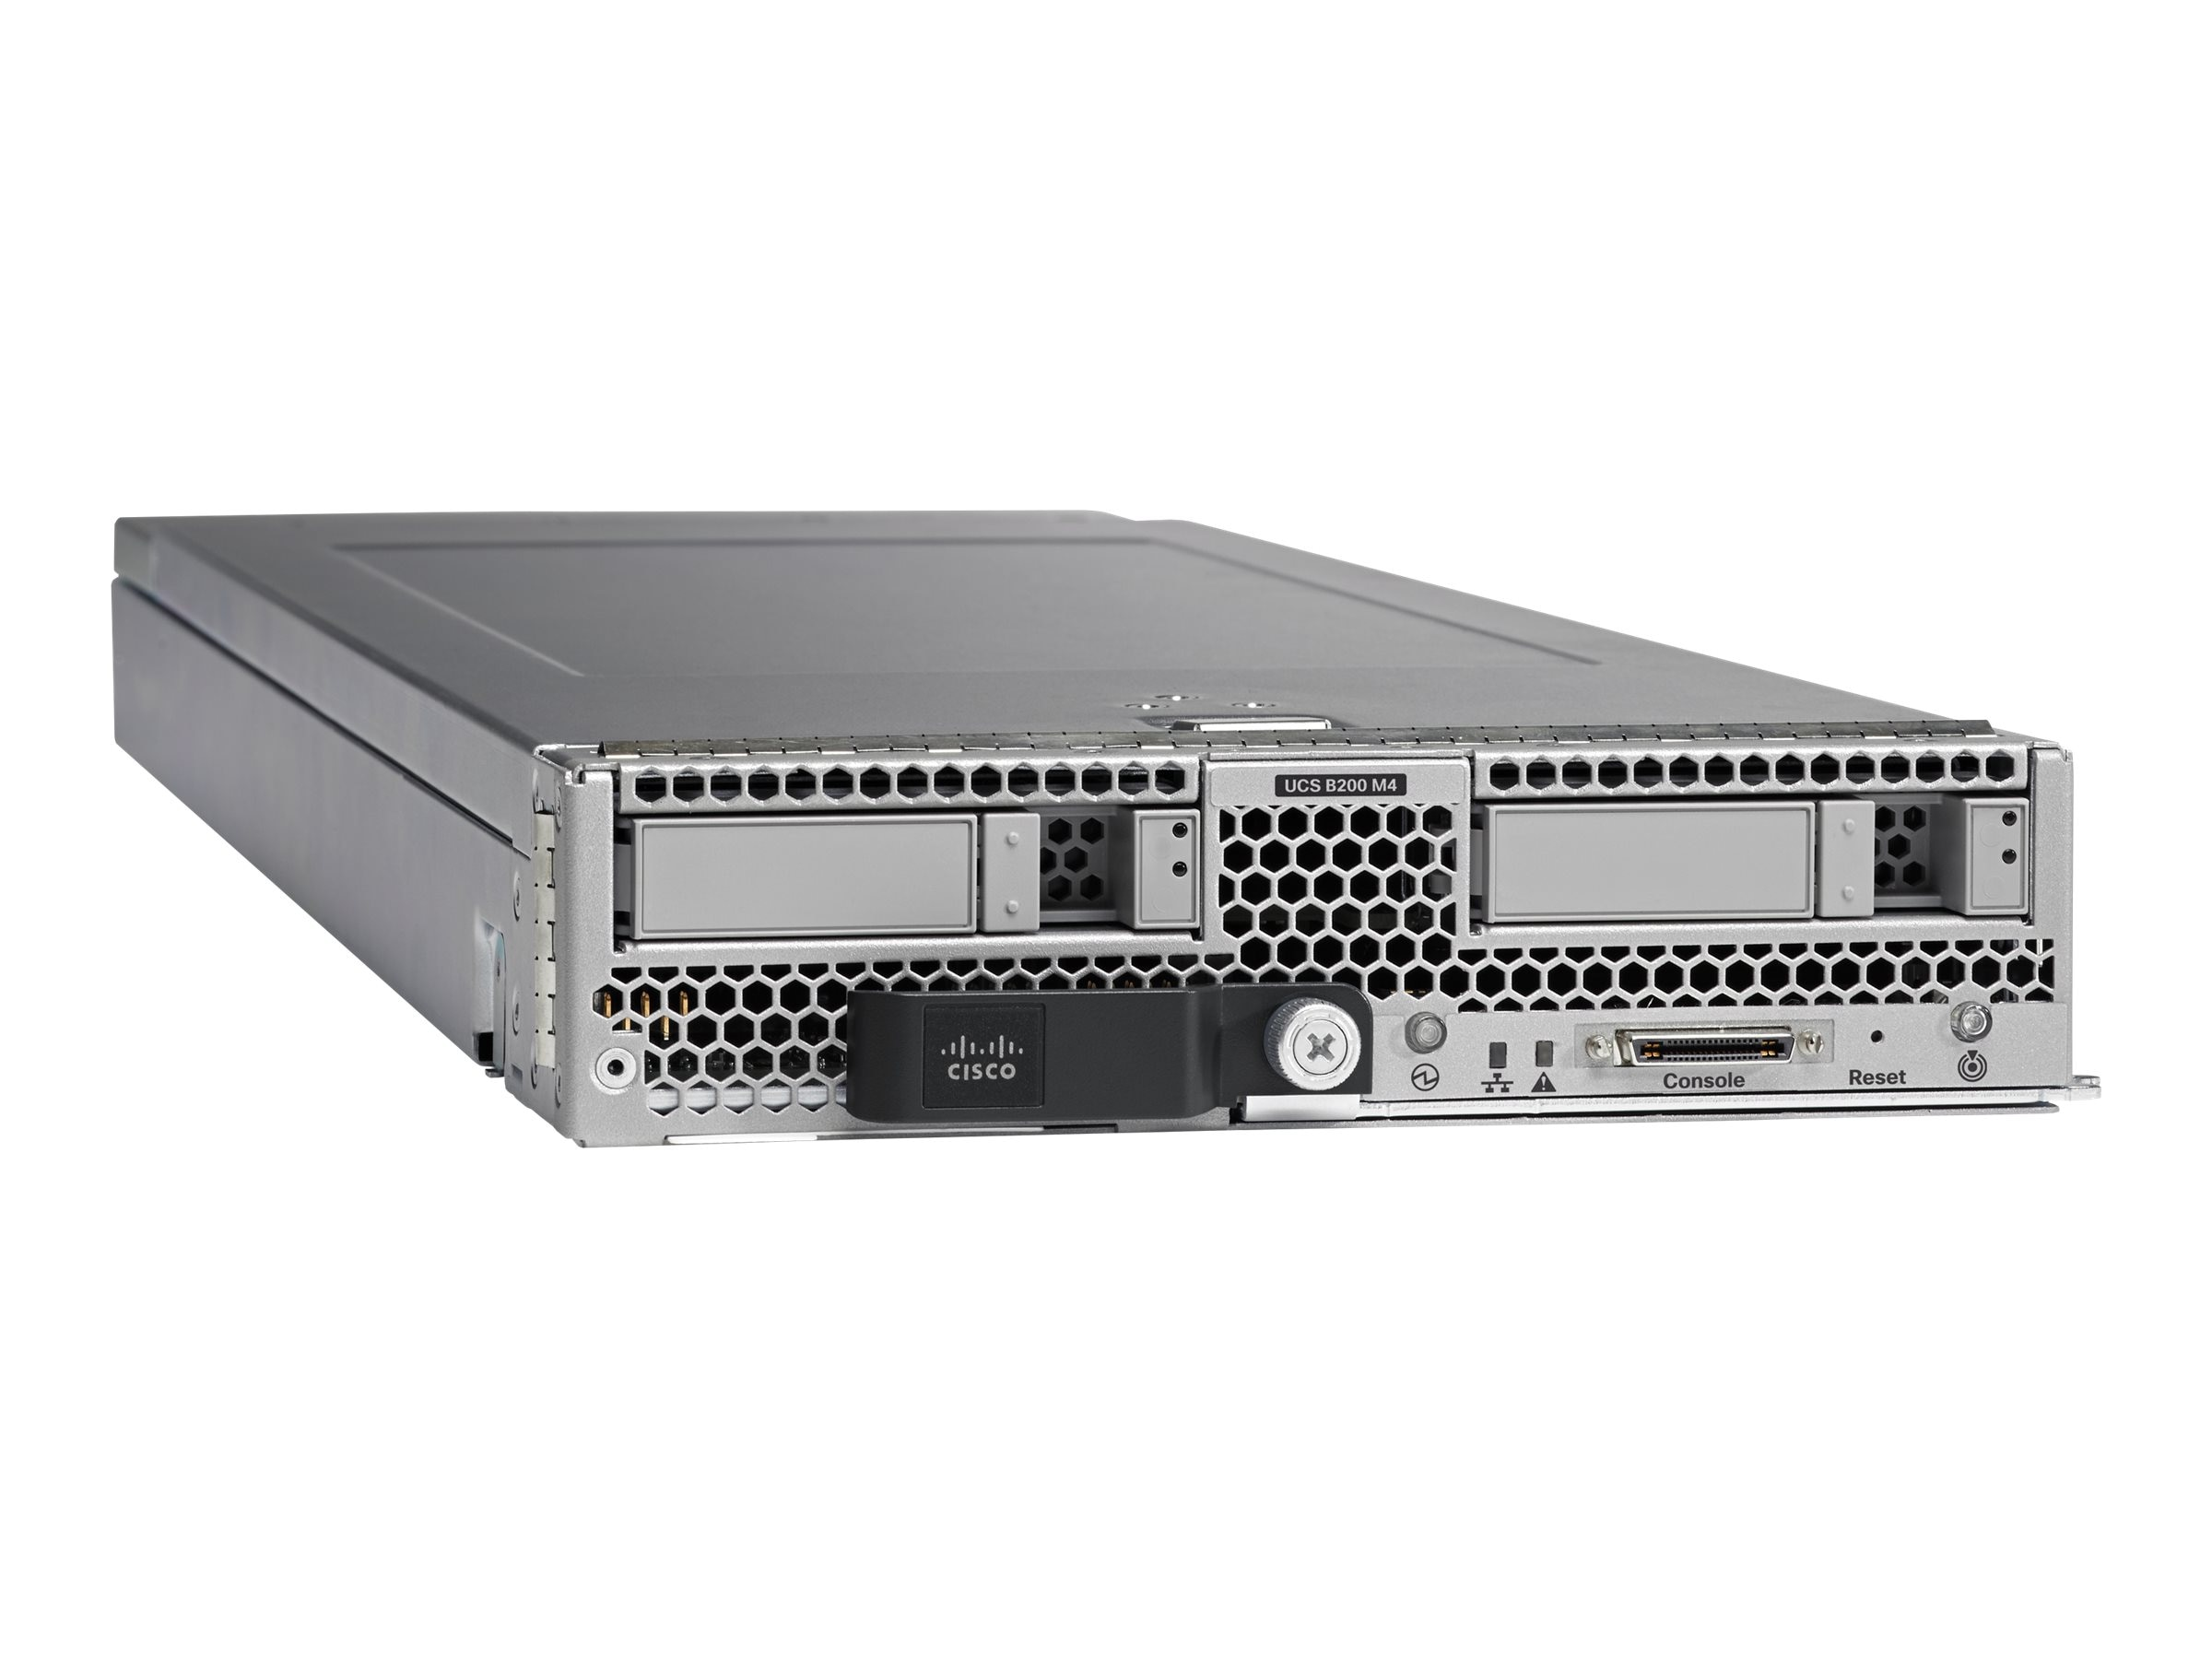 Cisco UCS-SP-B200M4-A1 Image 3